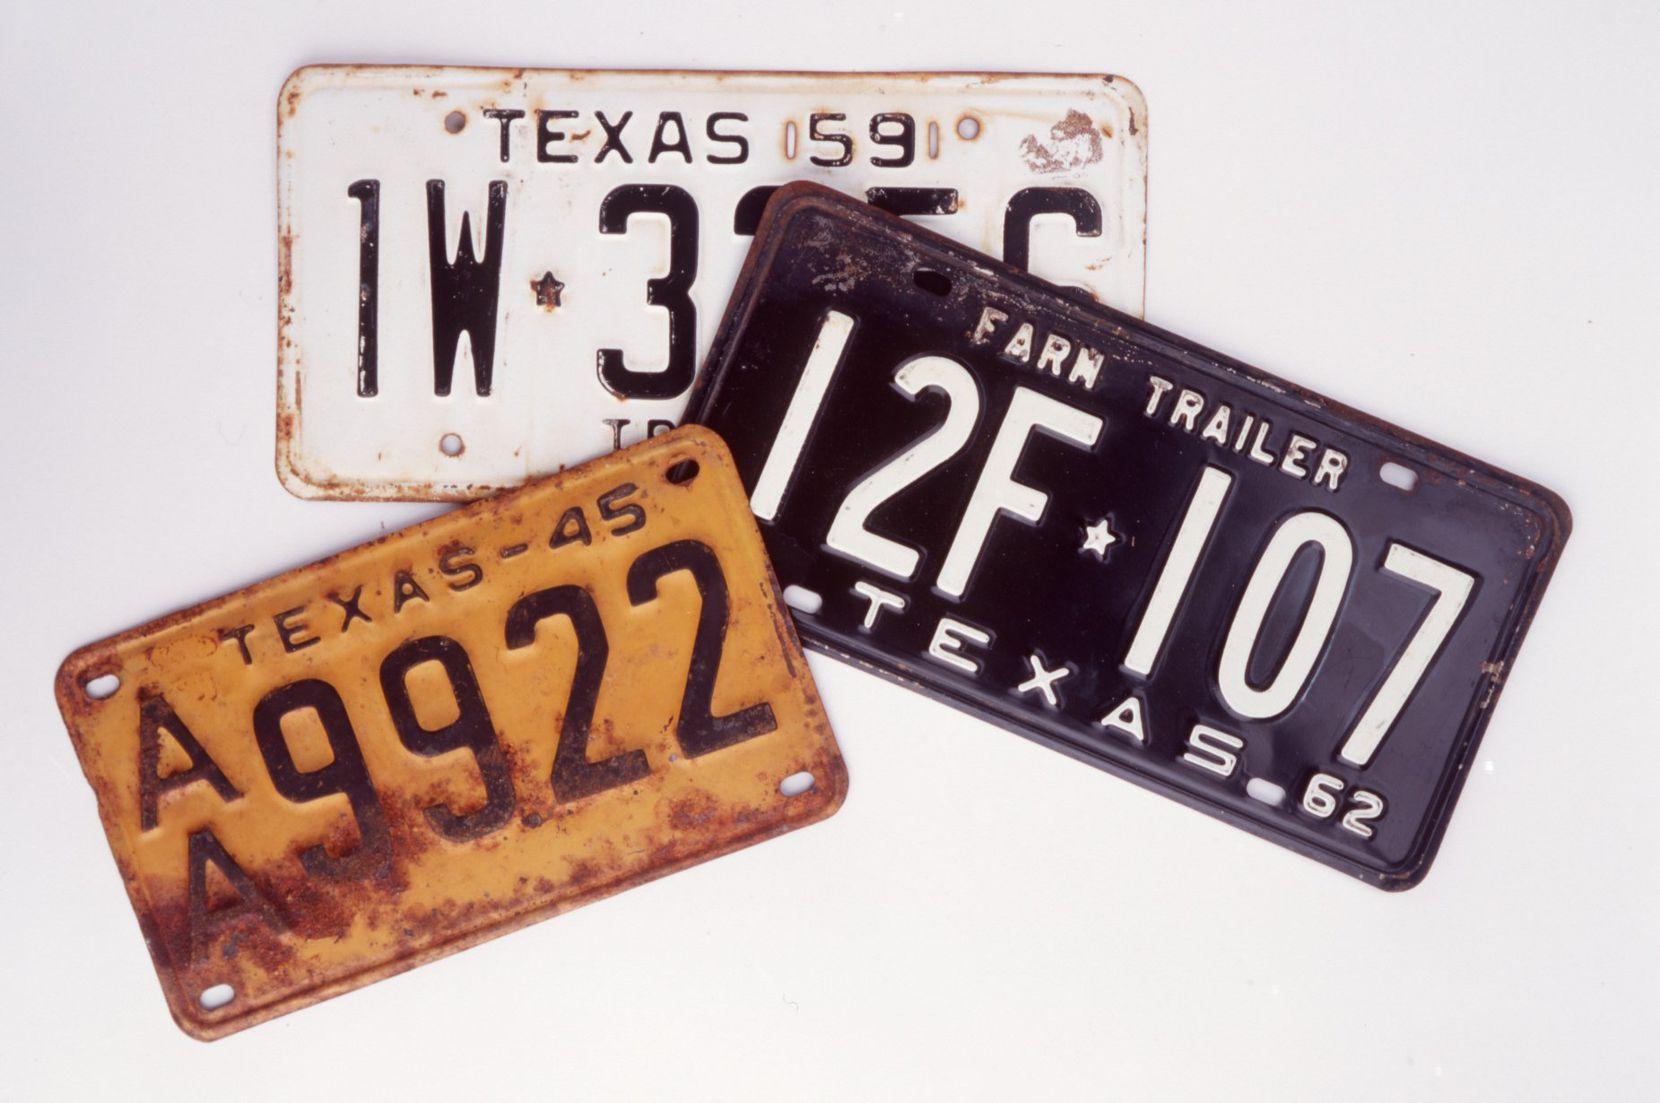 Texas license plates have gone through a long, colorful evolution since first coming into use in 1917.